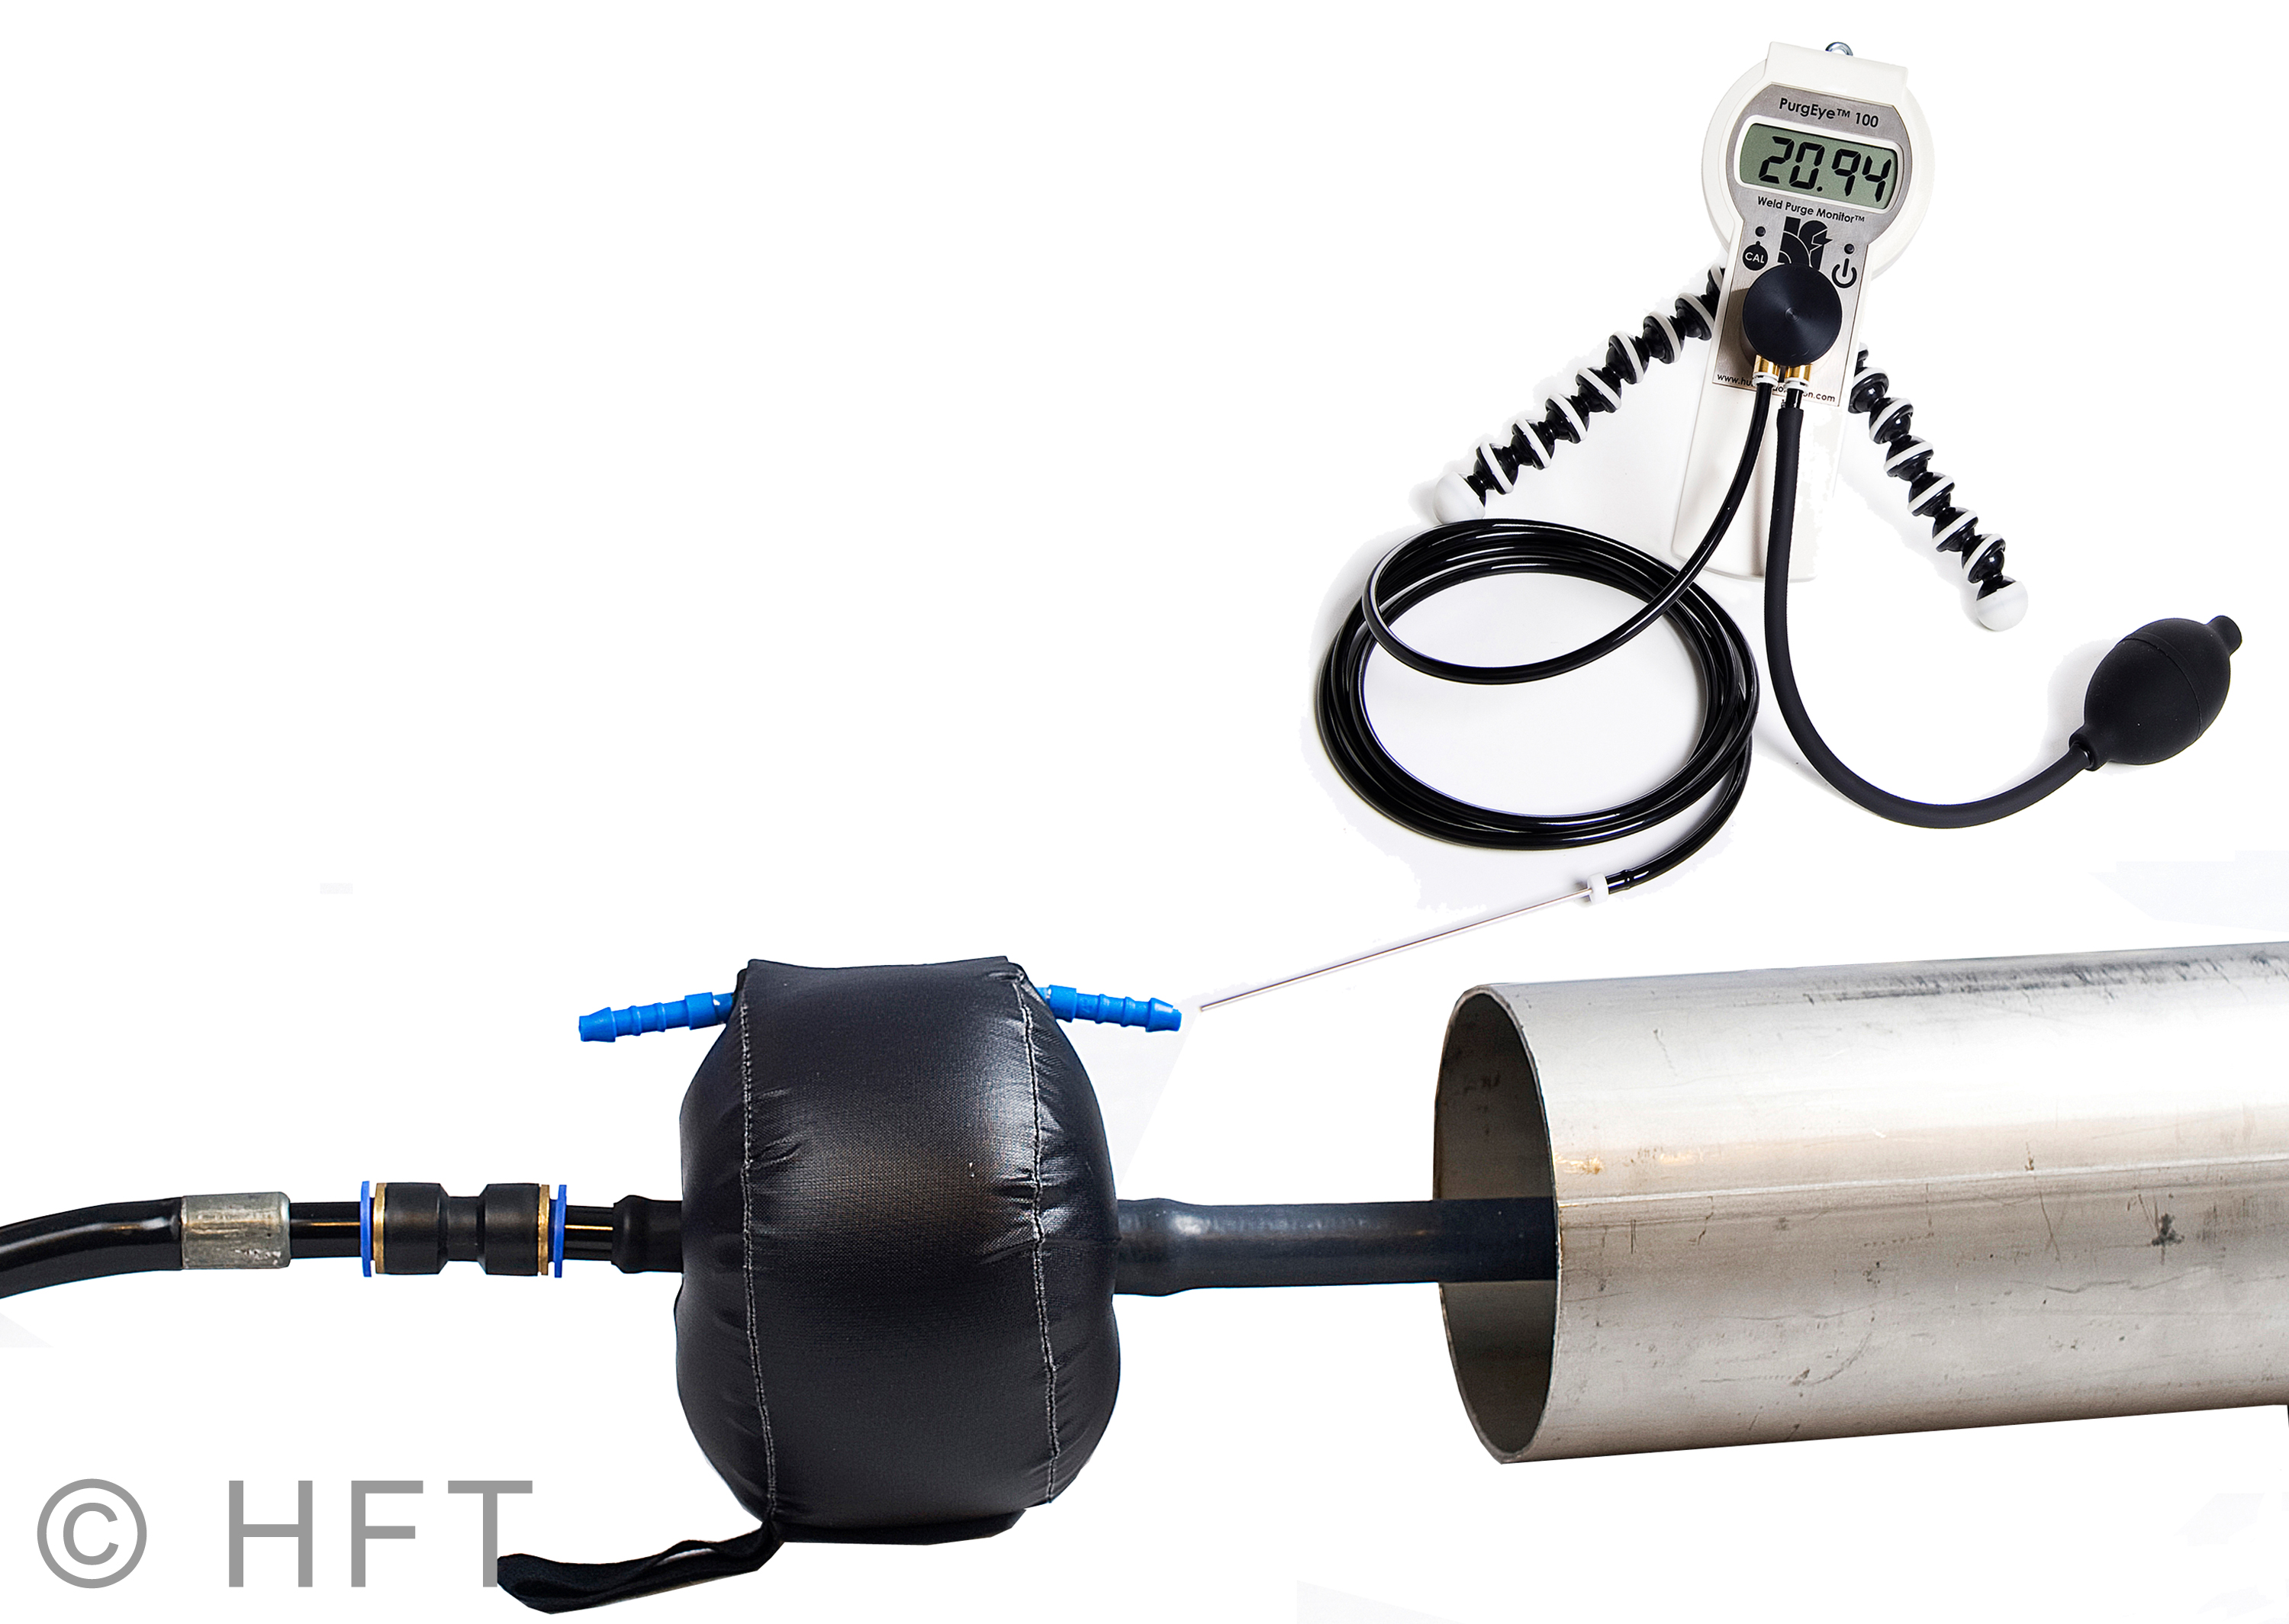 The PurgElite group of inflatable devices contains the world's smallest inflatable pipe purging system. It can be used in pipes and tubes with a diameter of only 25 mm (1 in) and up to 300 mm (12 in).(Click on photo to enlarge it)